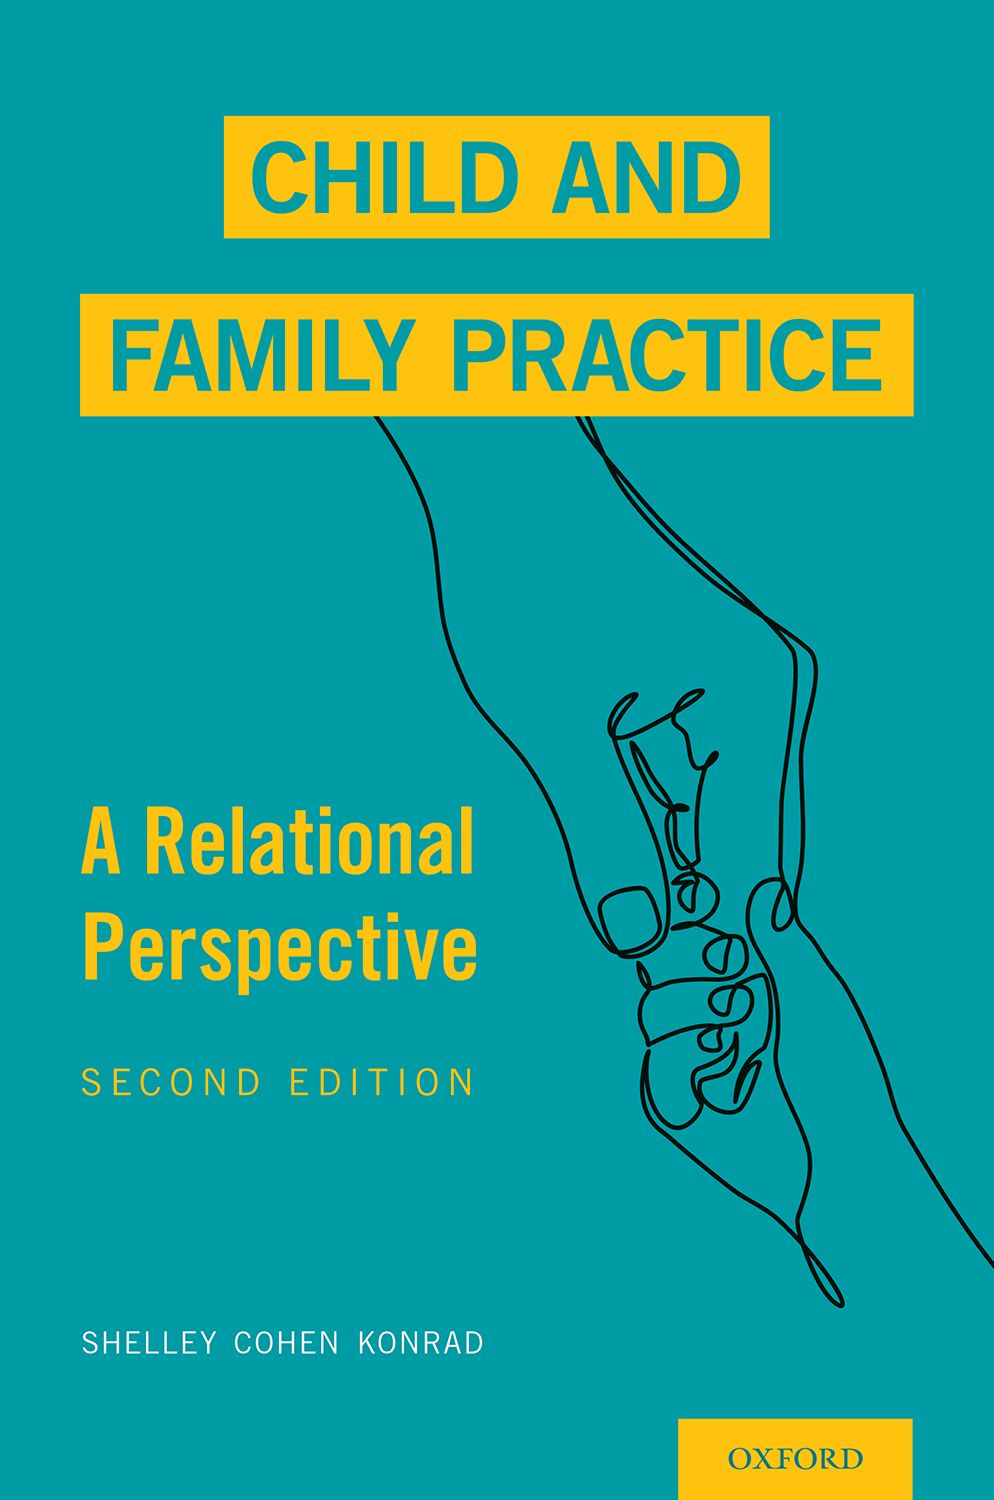 Child and Family Practice: A Relational Perspective 2e